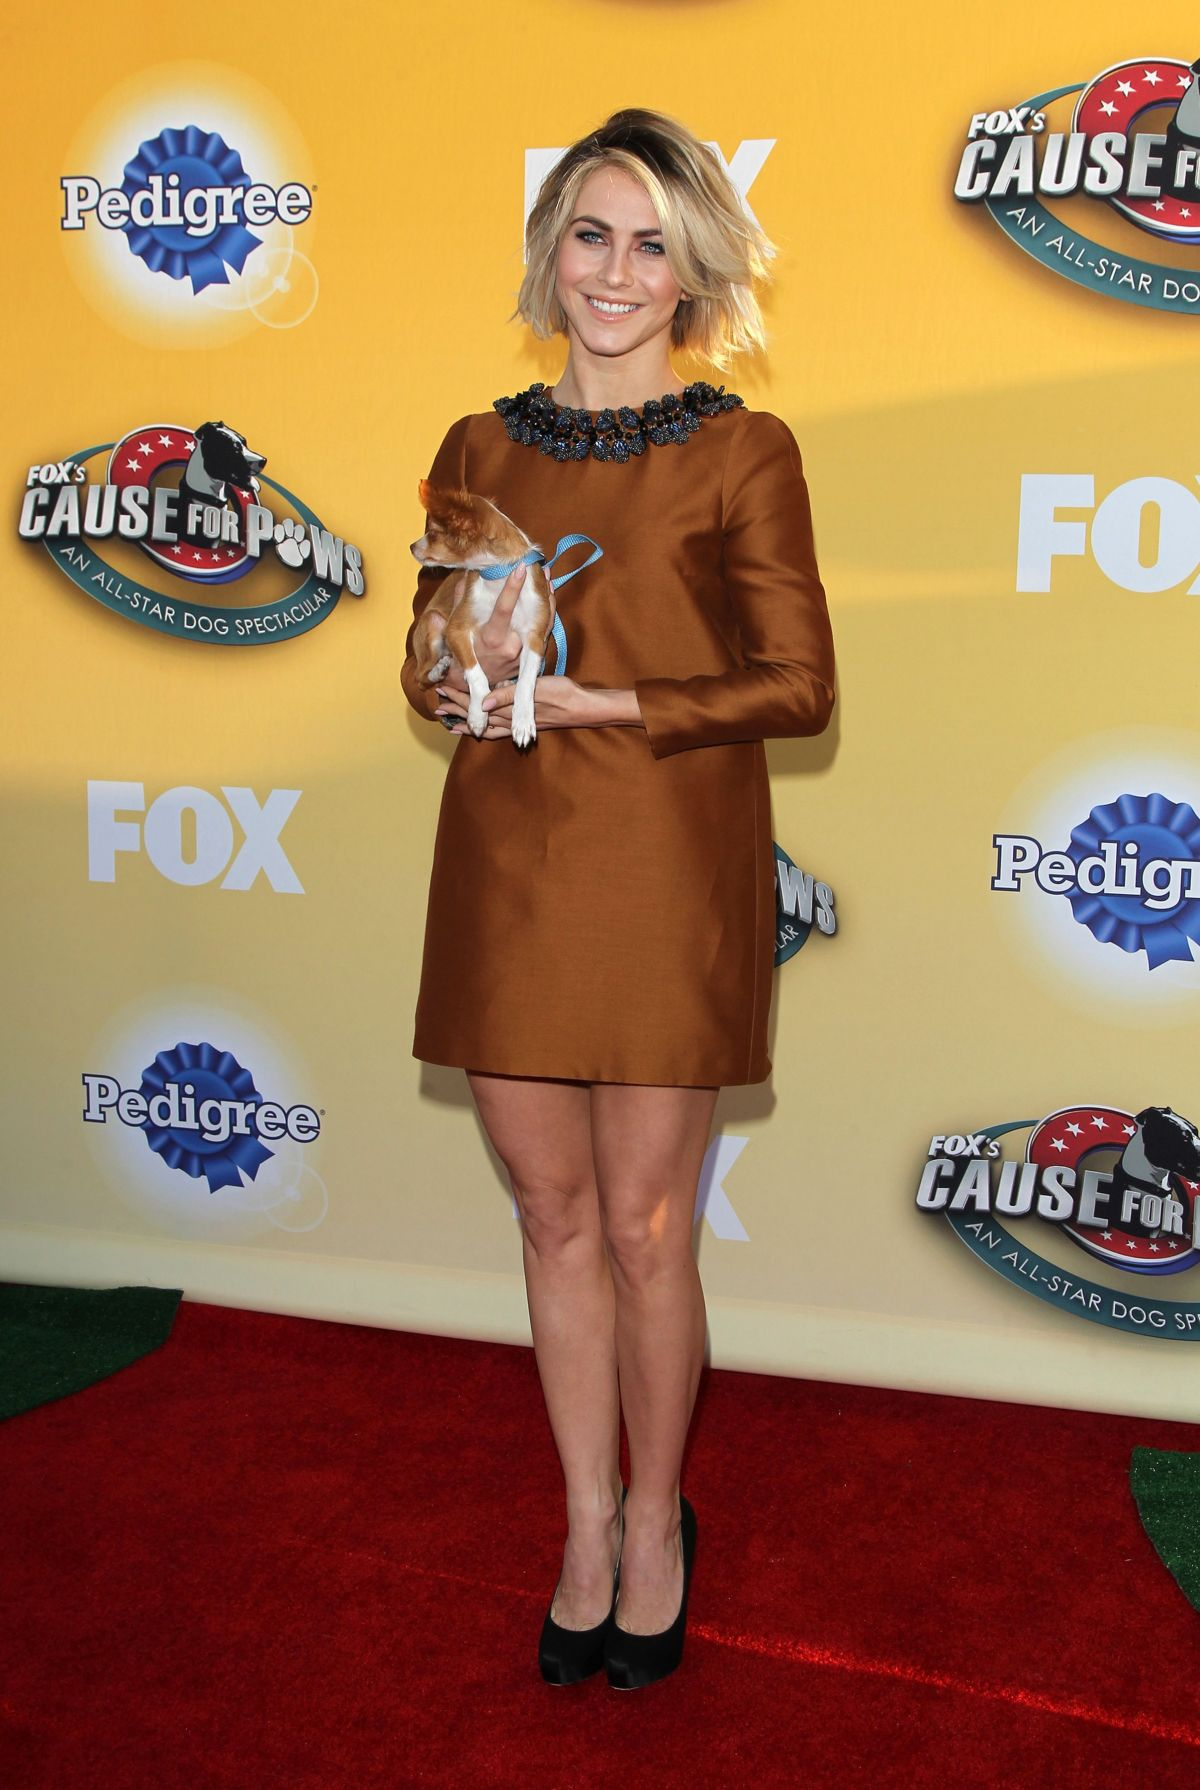 JULIANNE HOUGH at Fox's Cause for Pawns an All-Star Dog Event in Santa Monica